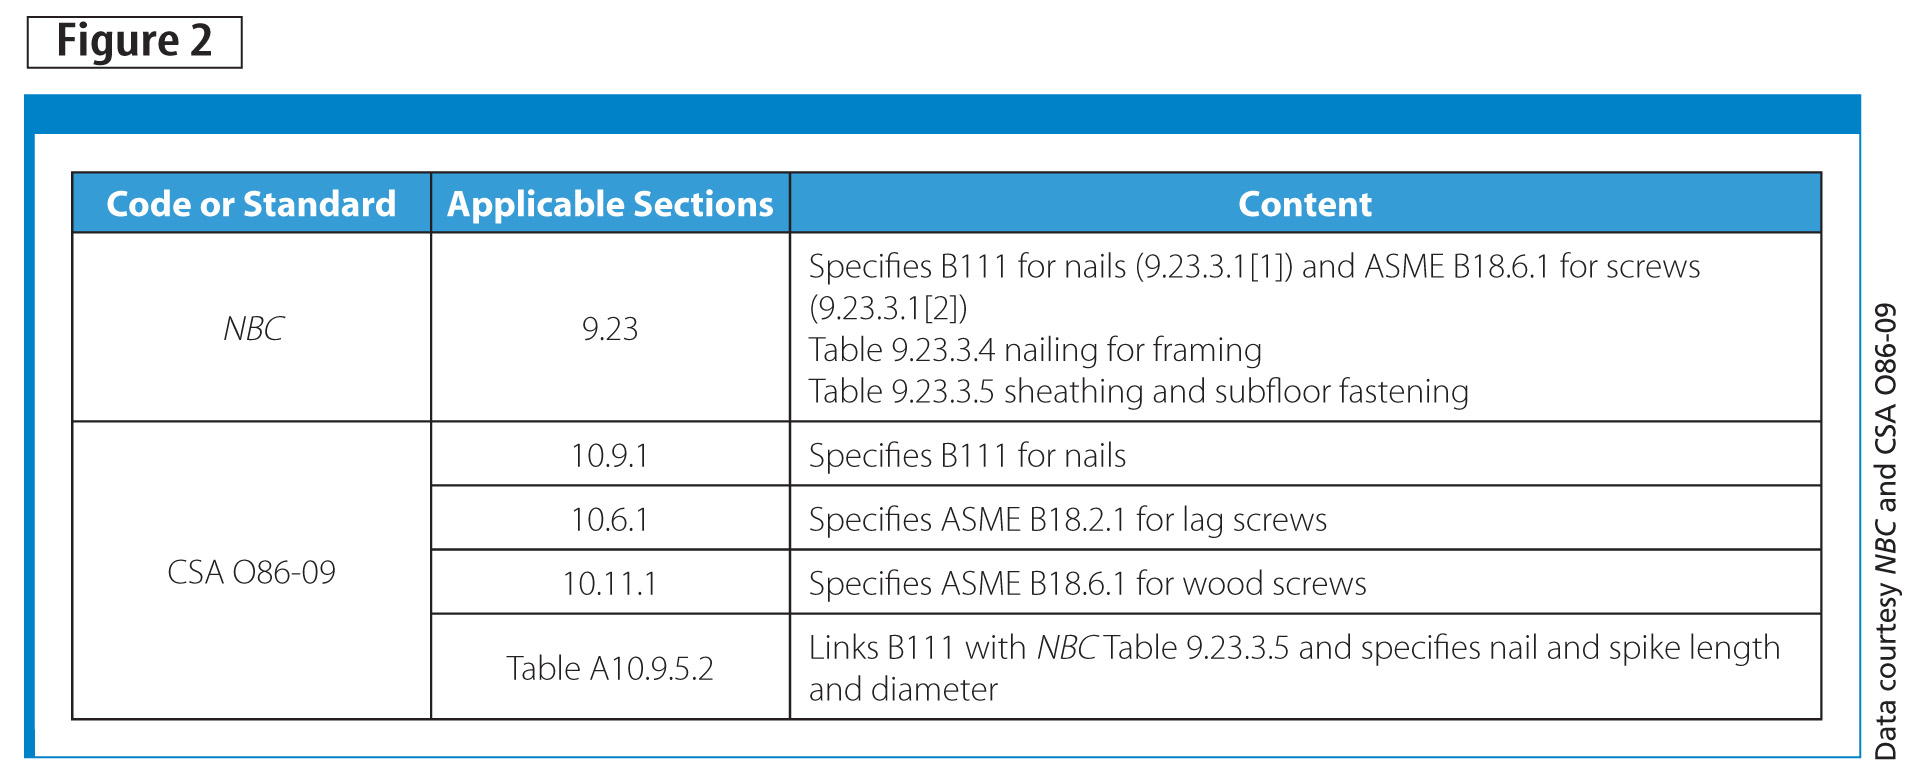 Codes and standards specifying nails and screws for wood-frame construction. Data courtesy NBC and CSA O86-09